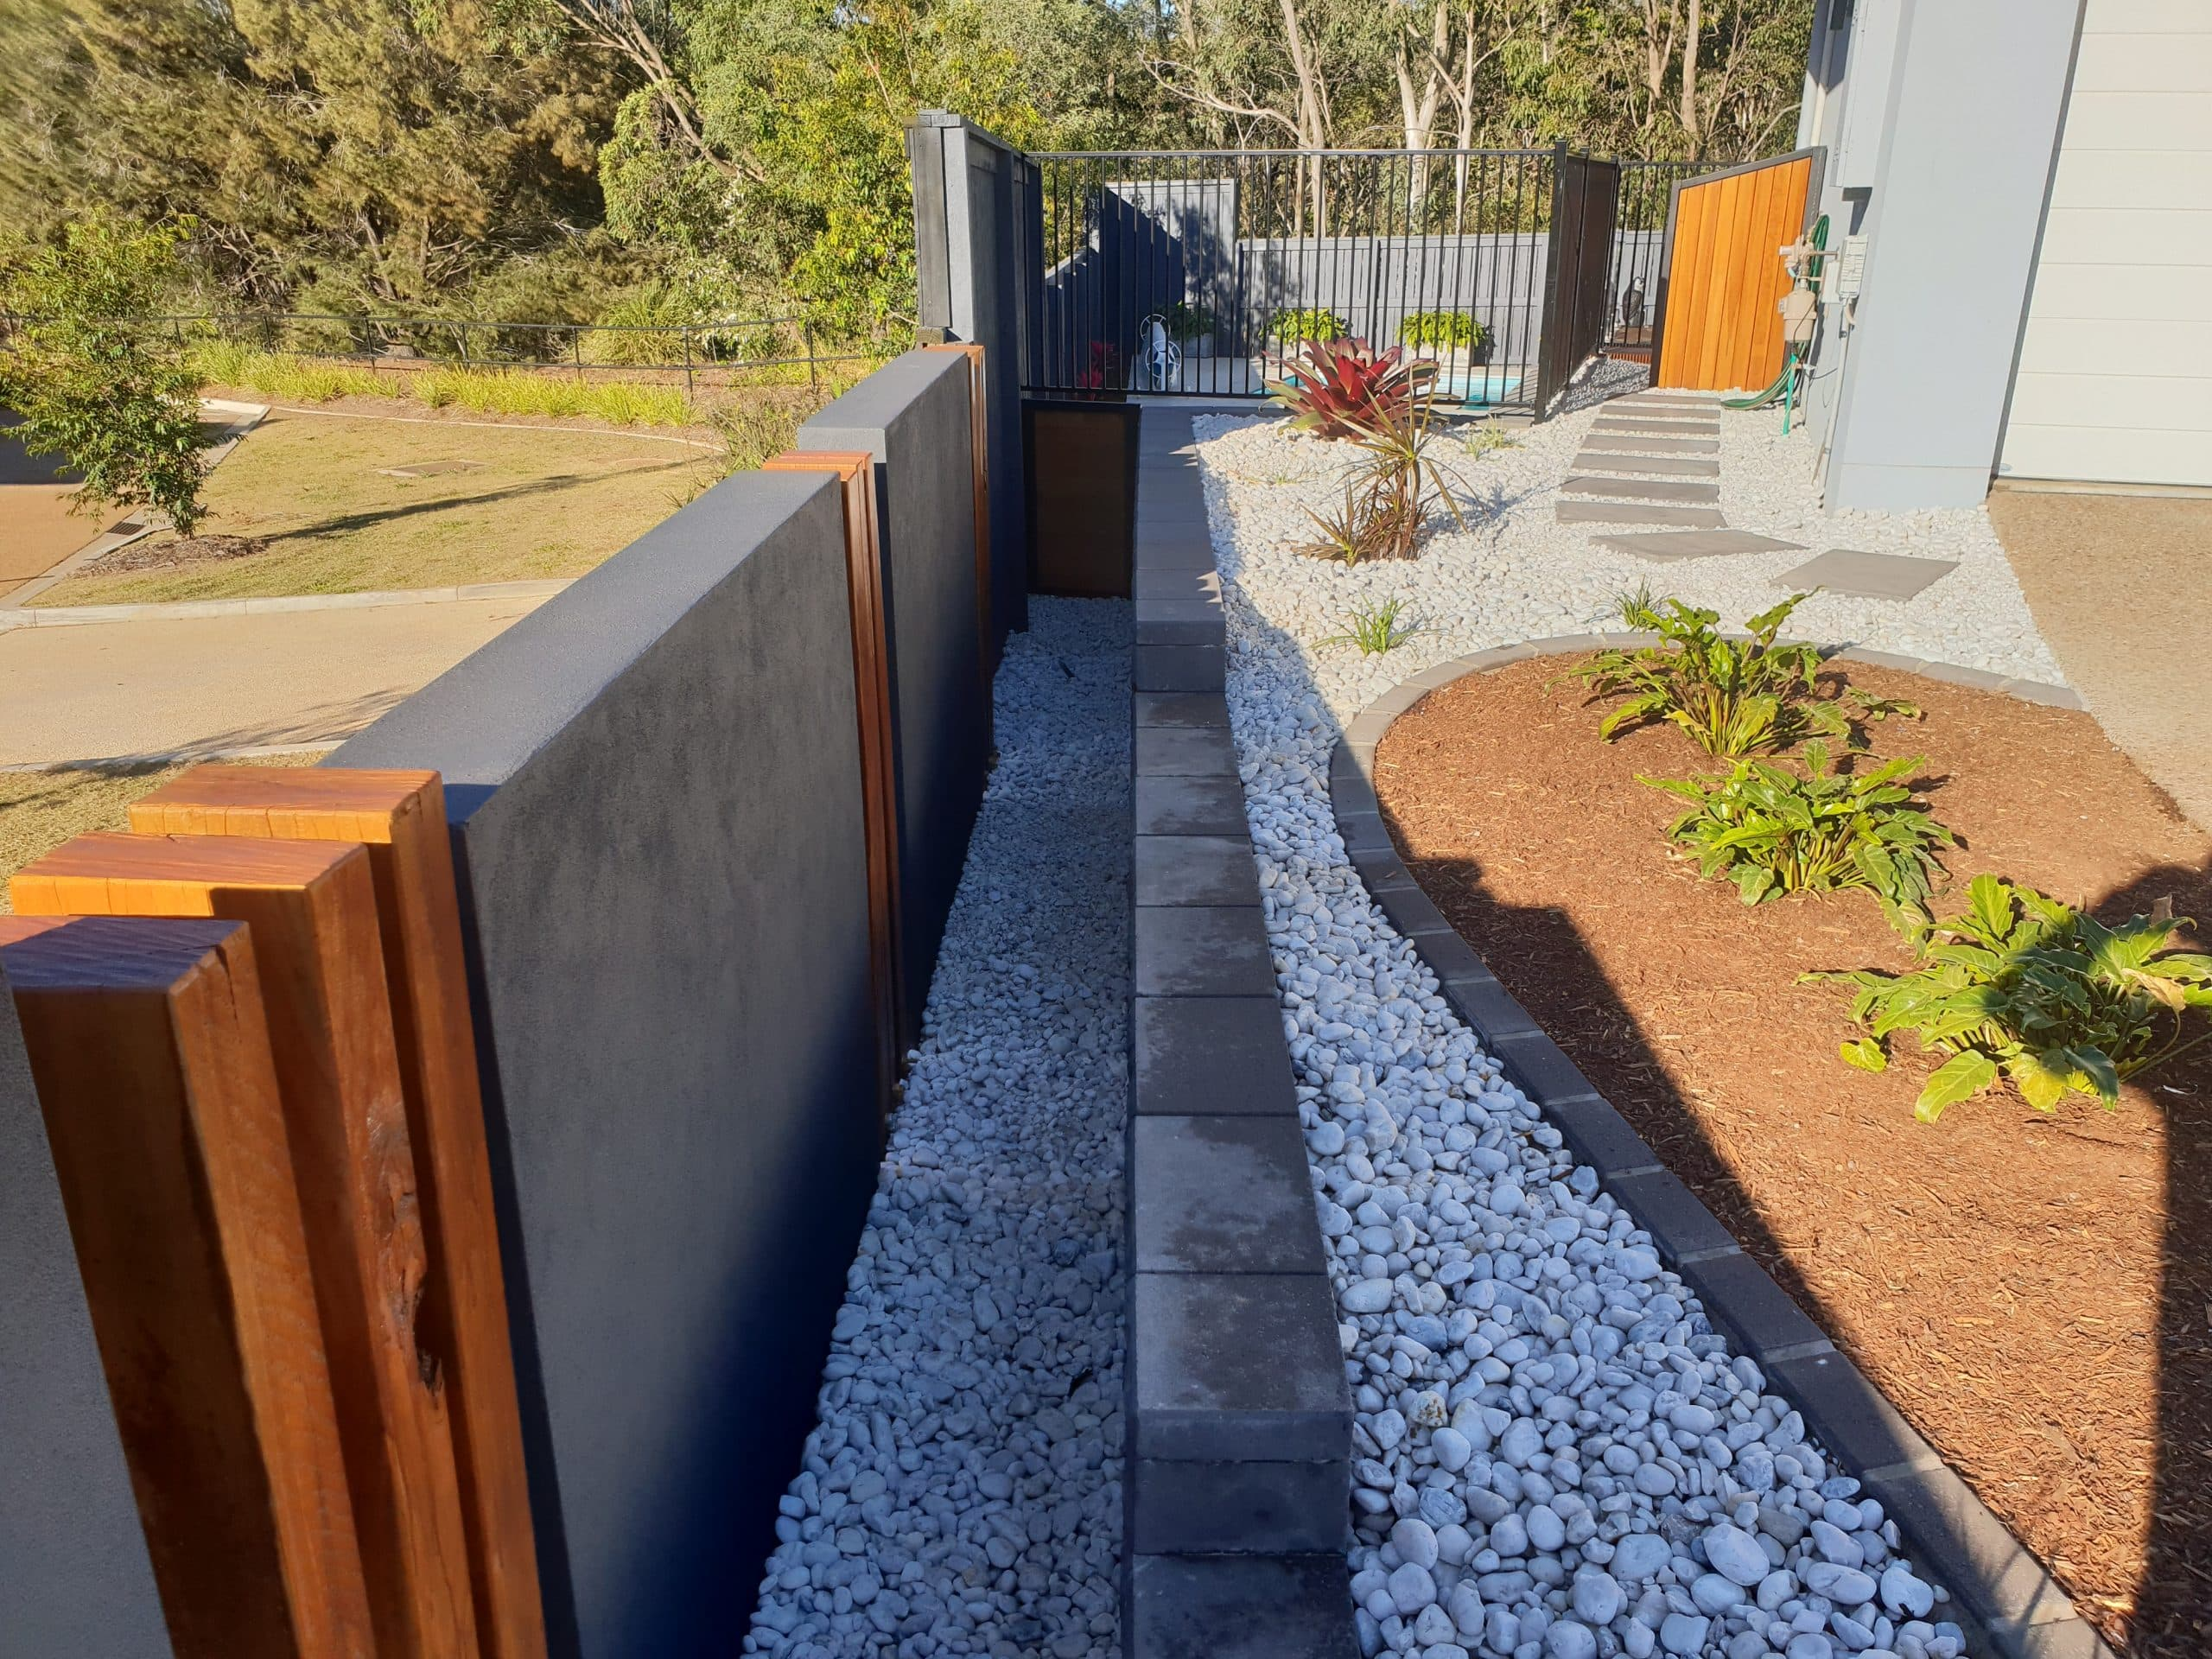 Retaining wall, rock garden and featured plants